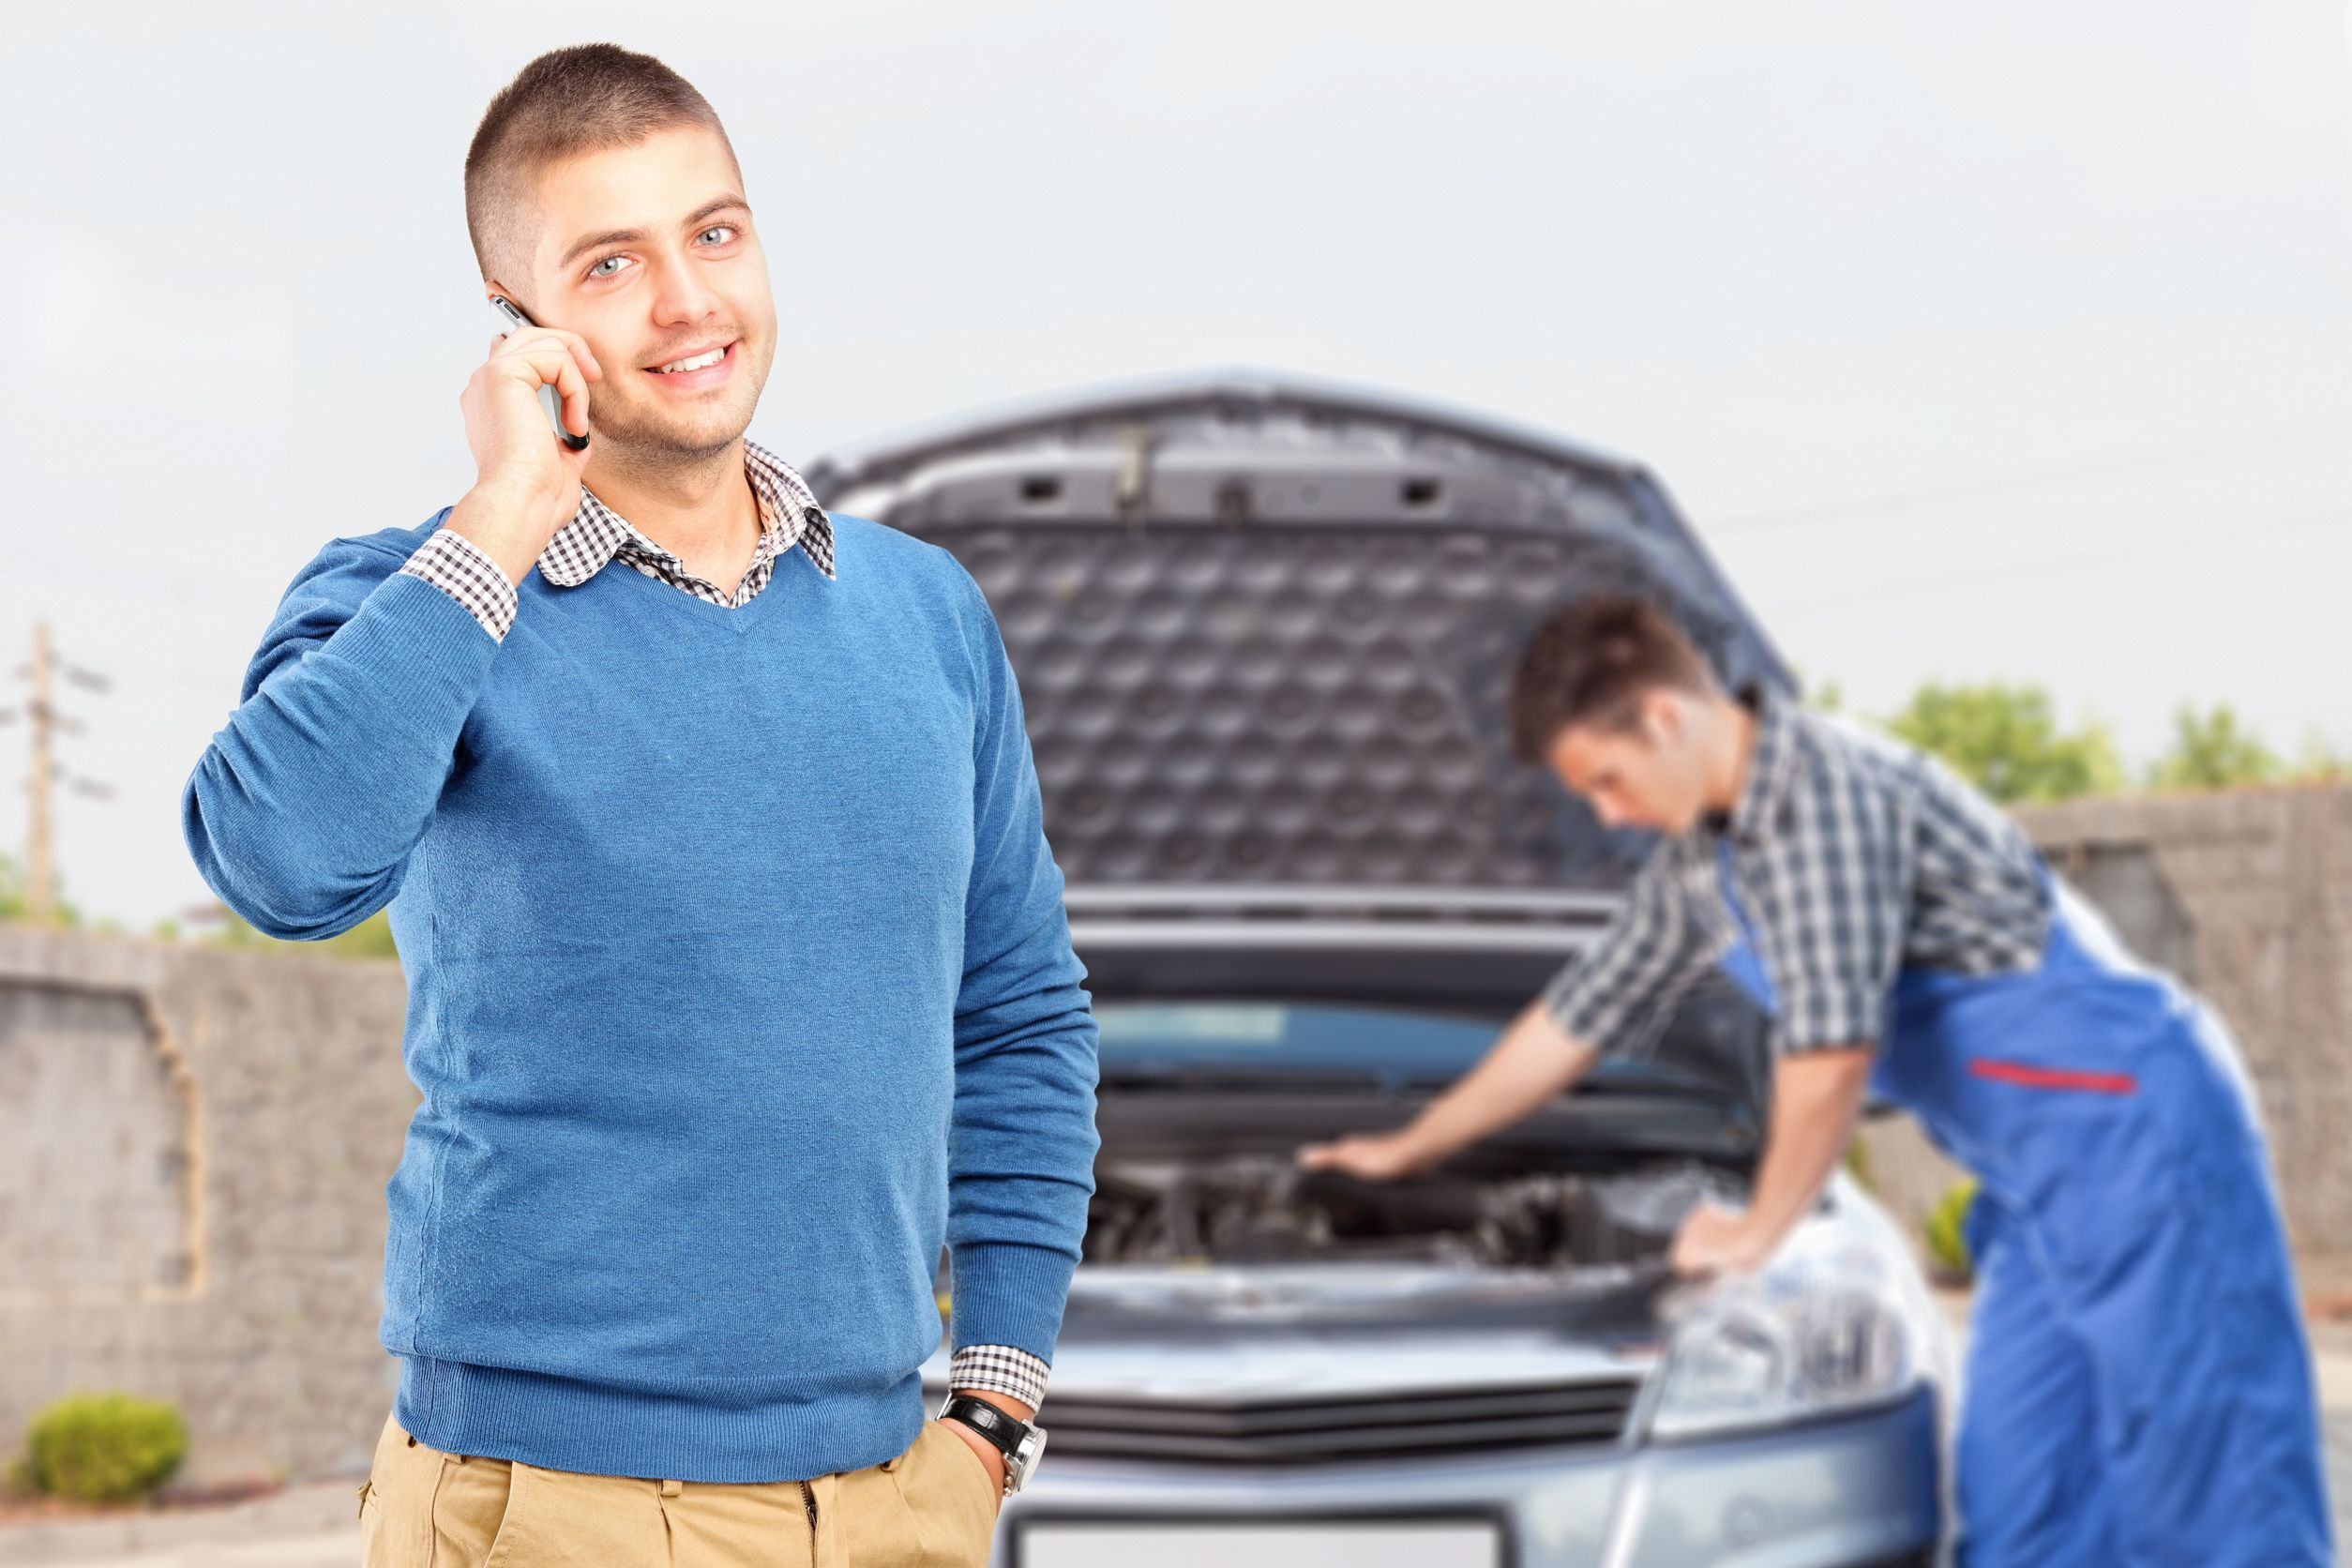 Harris County Mobile Mechanic 832-564-3497